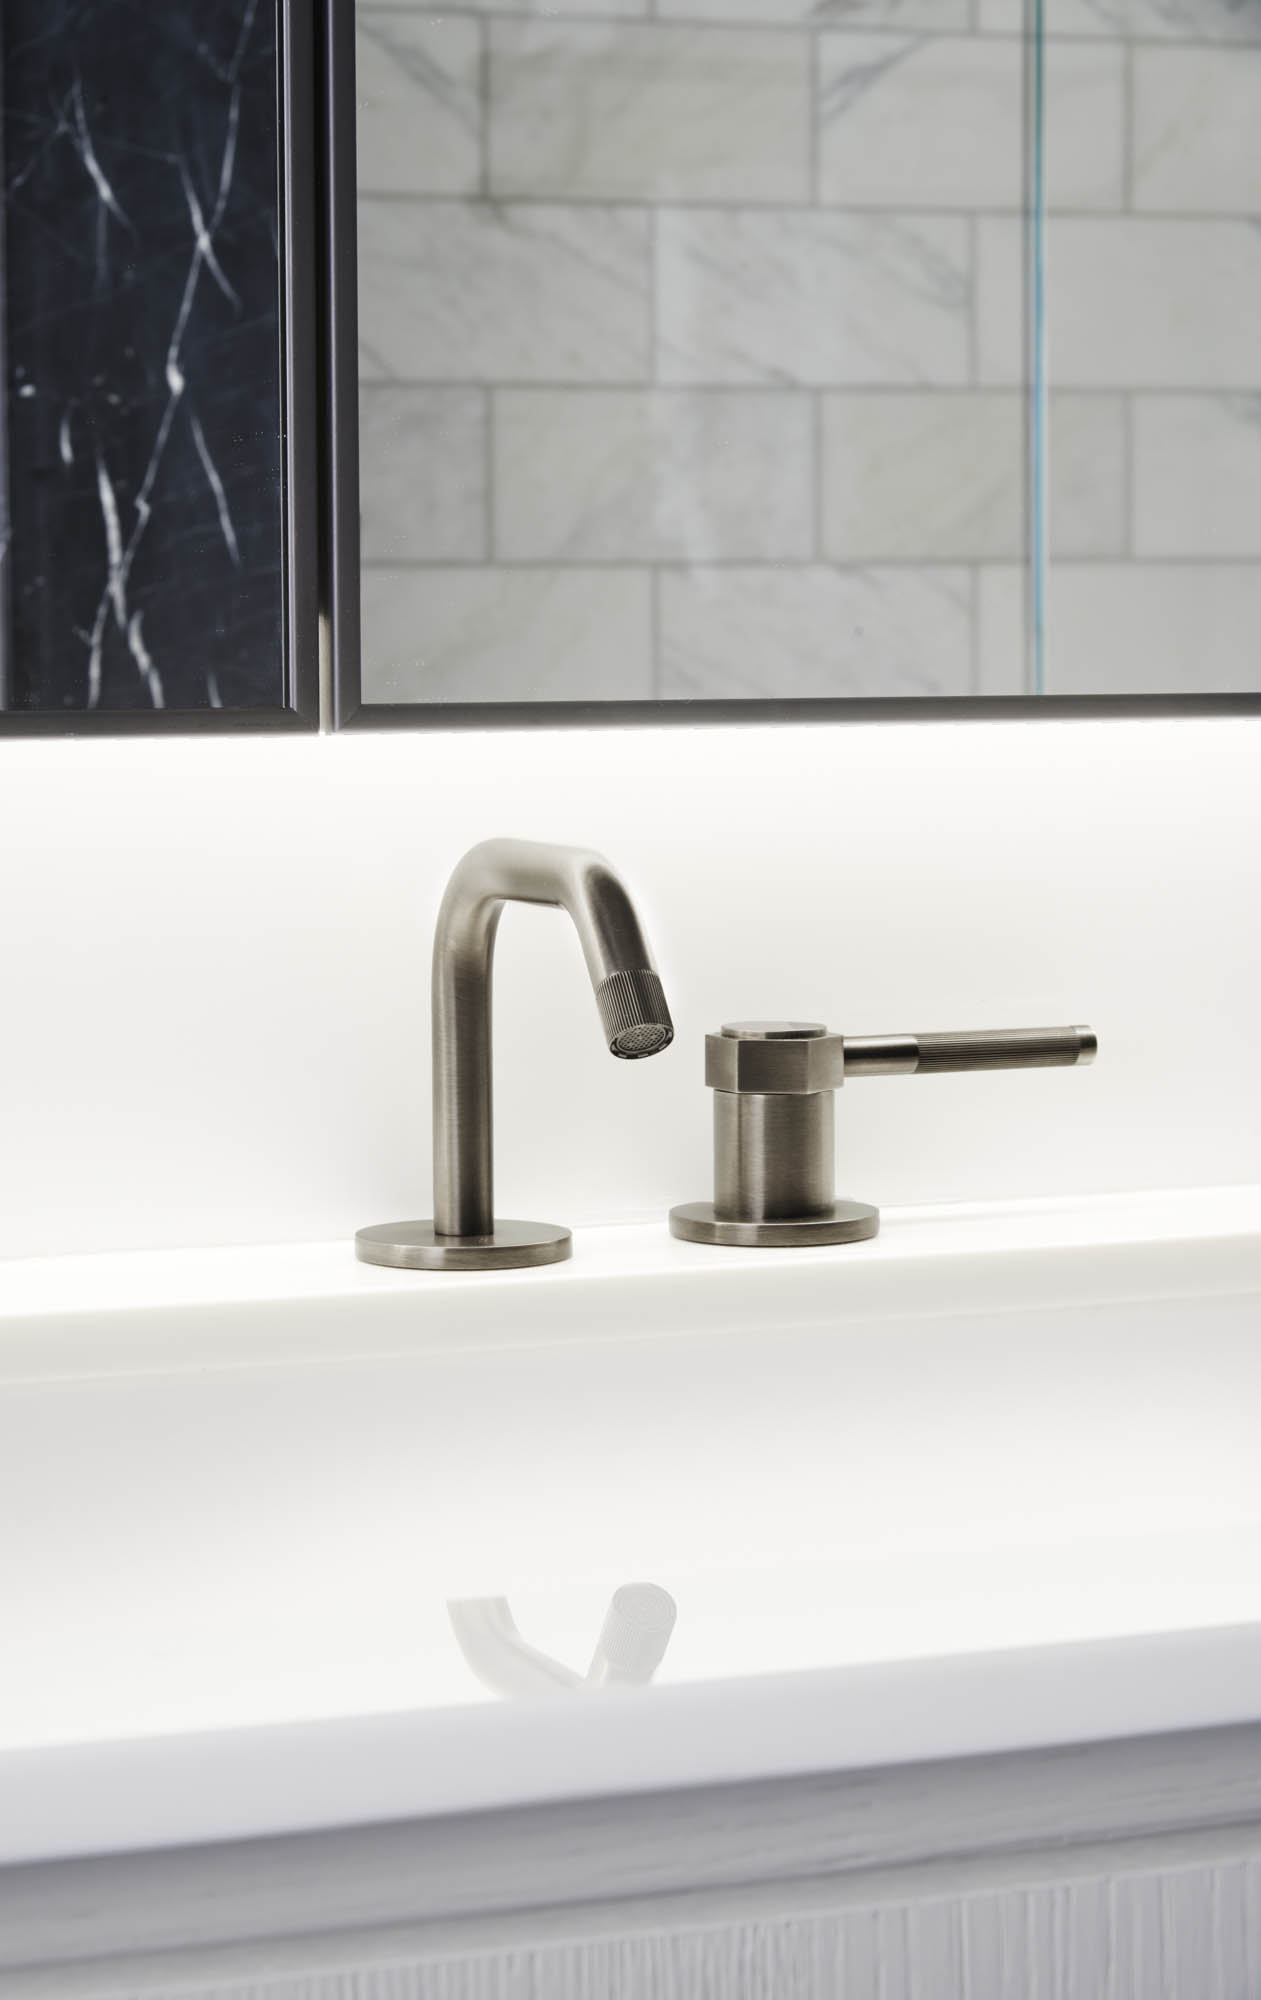 The Sutton Condominium Sales Office Sink and Faucet Detail